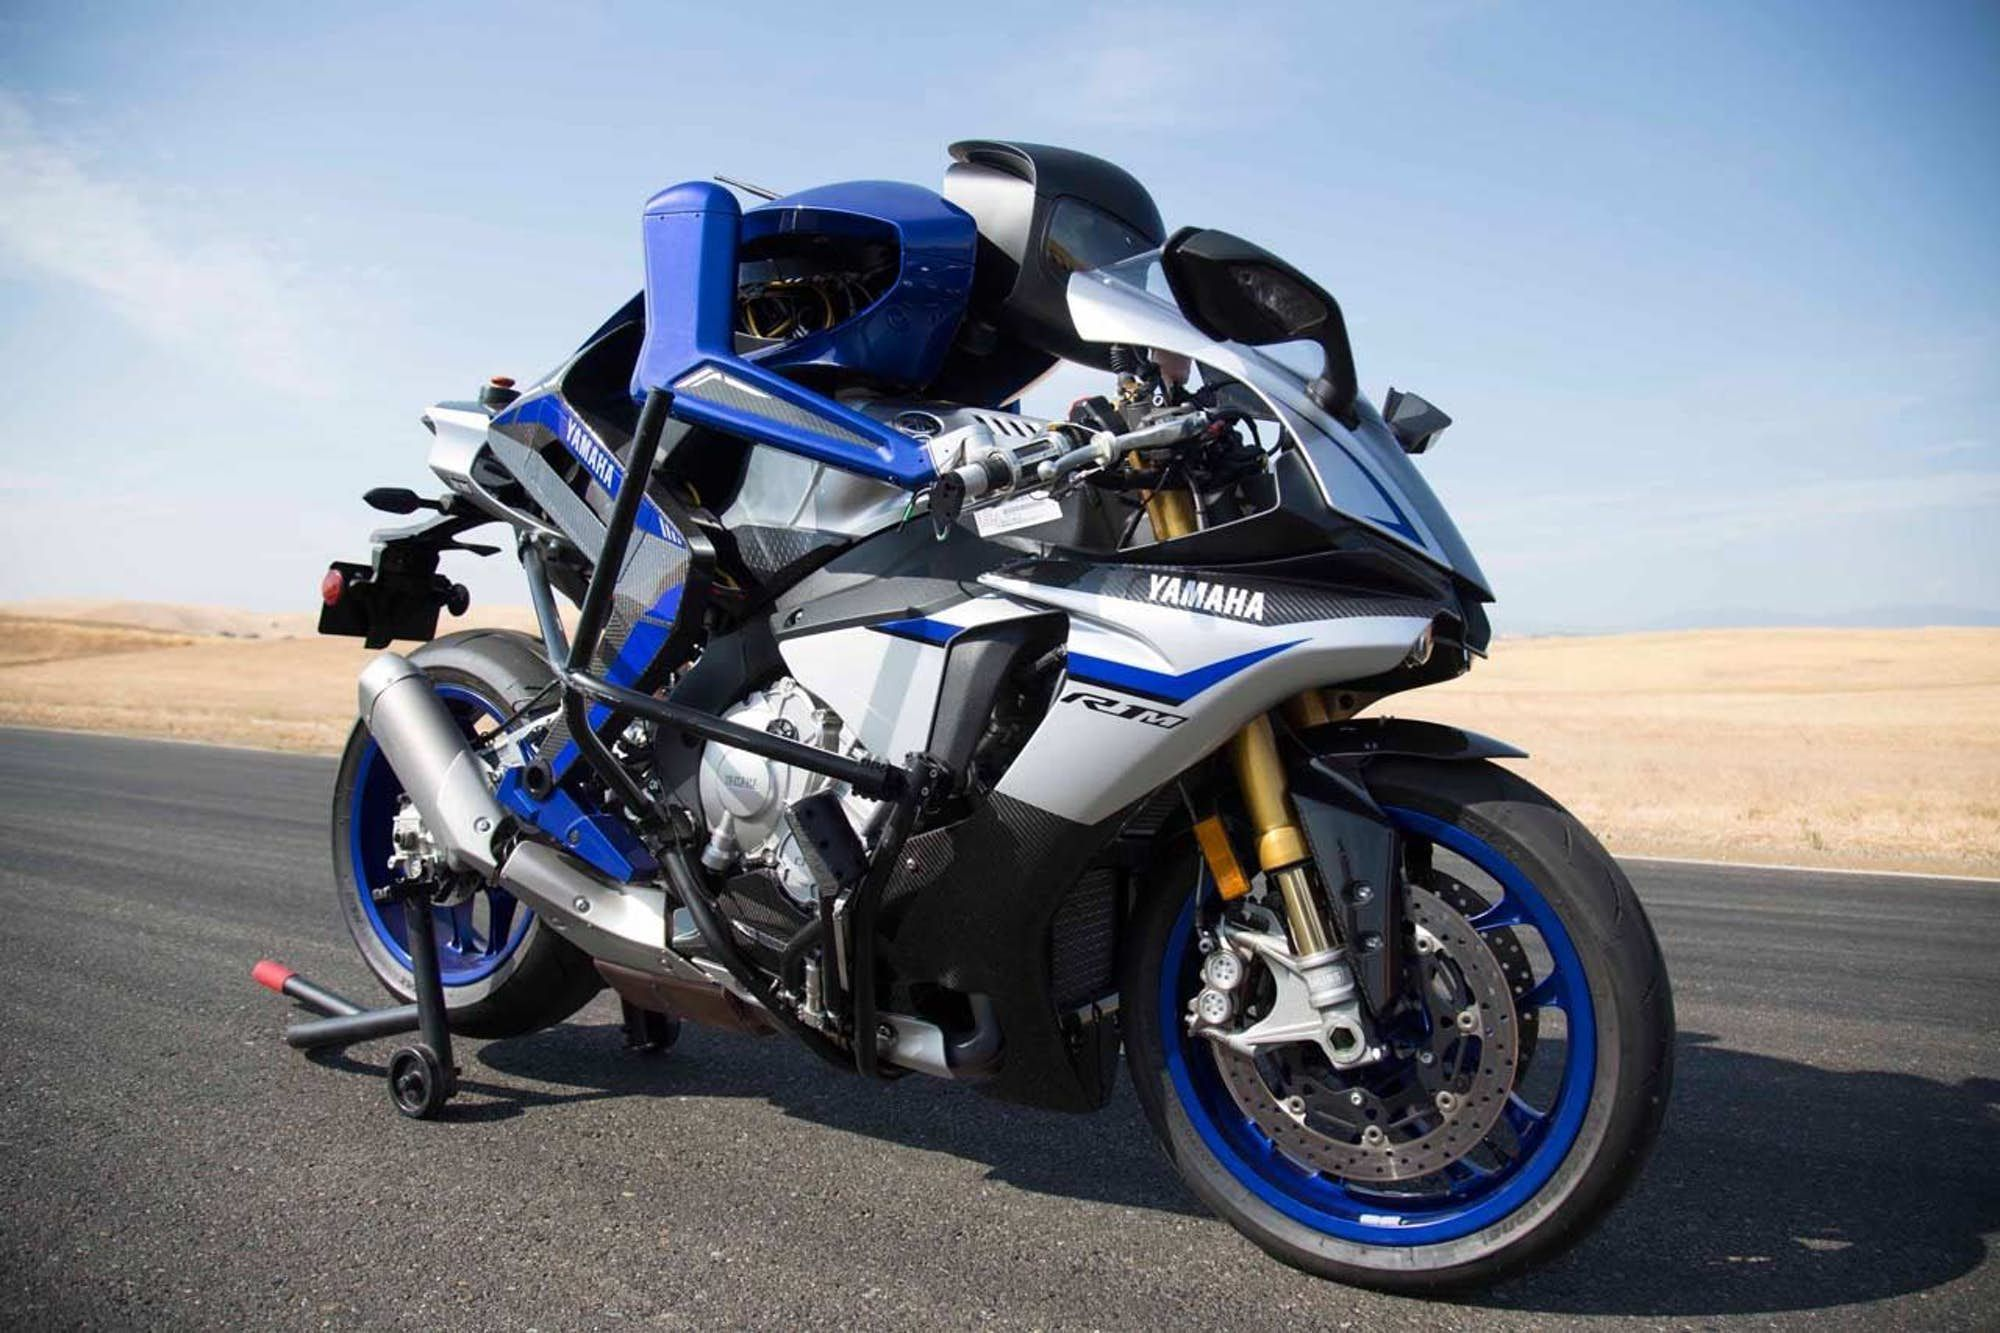 2020 Yamaha R1 First Ride From 2020 Yamaha Yzf R1 Release Date And Specs Bike Reviews Intended For 2020 Yamaha R1 Fir Tokyo Motor Show Yamaha New Motorcycles